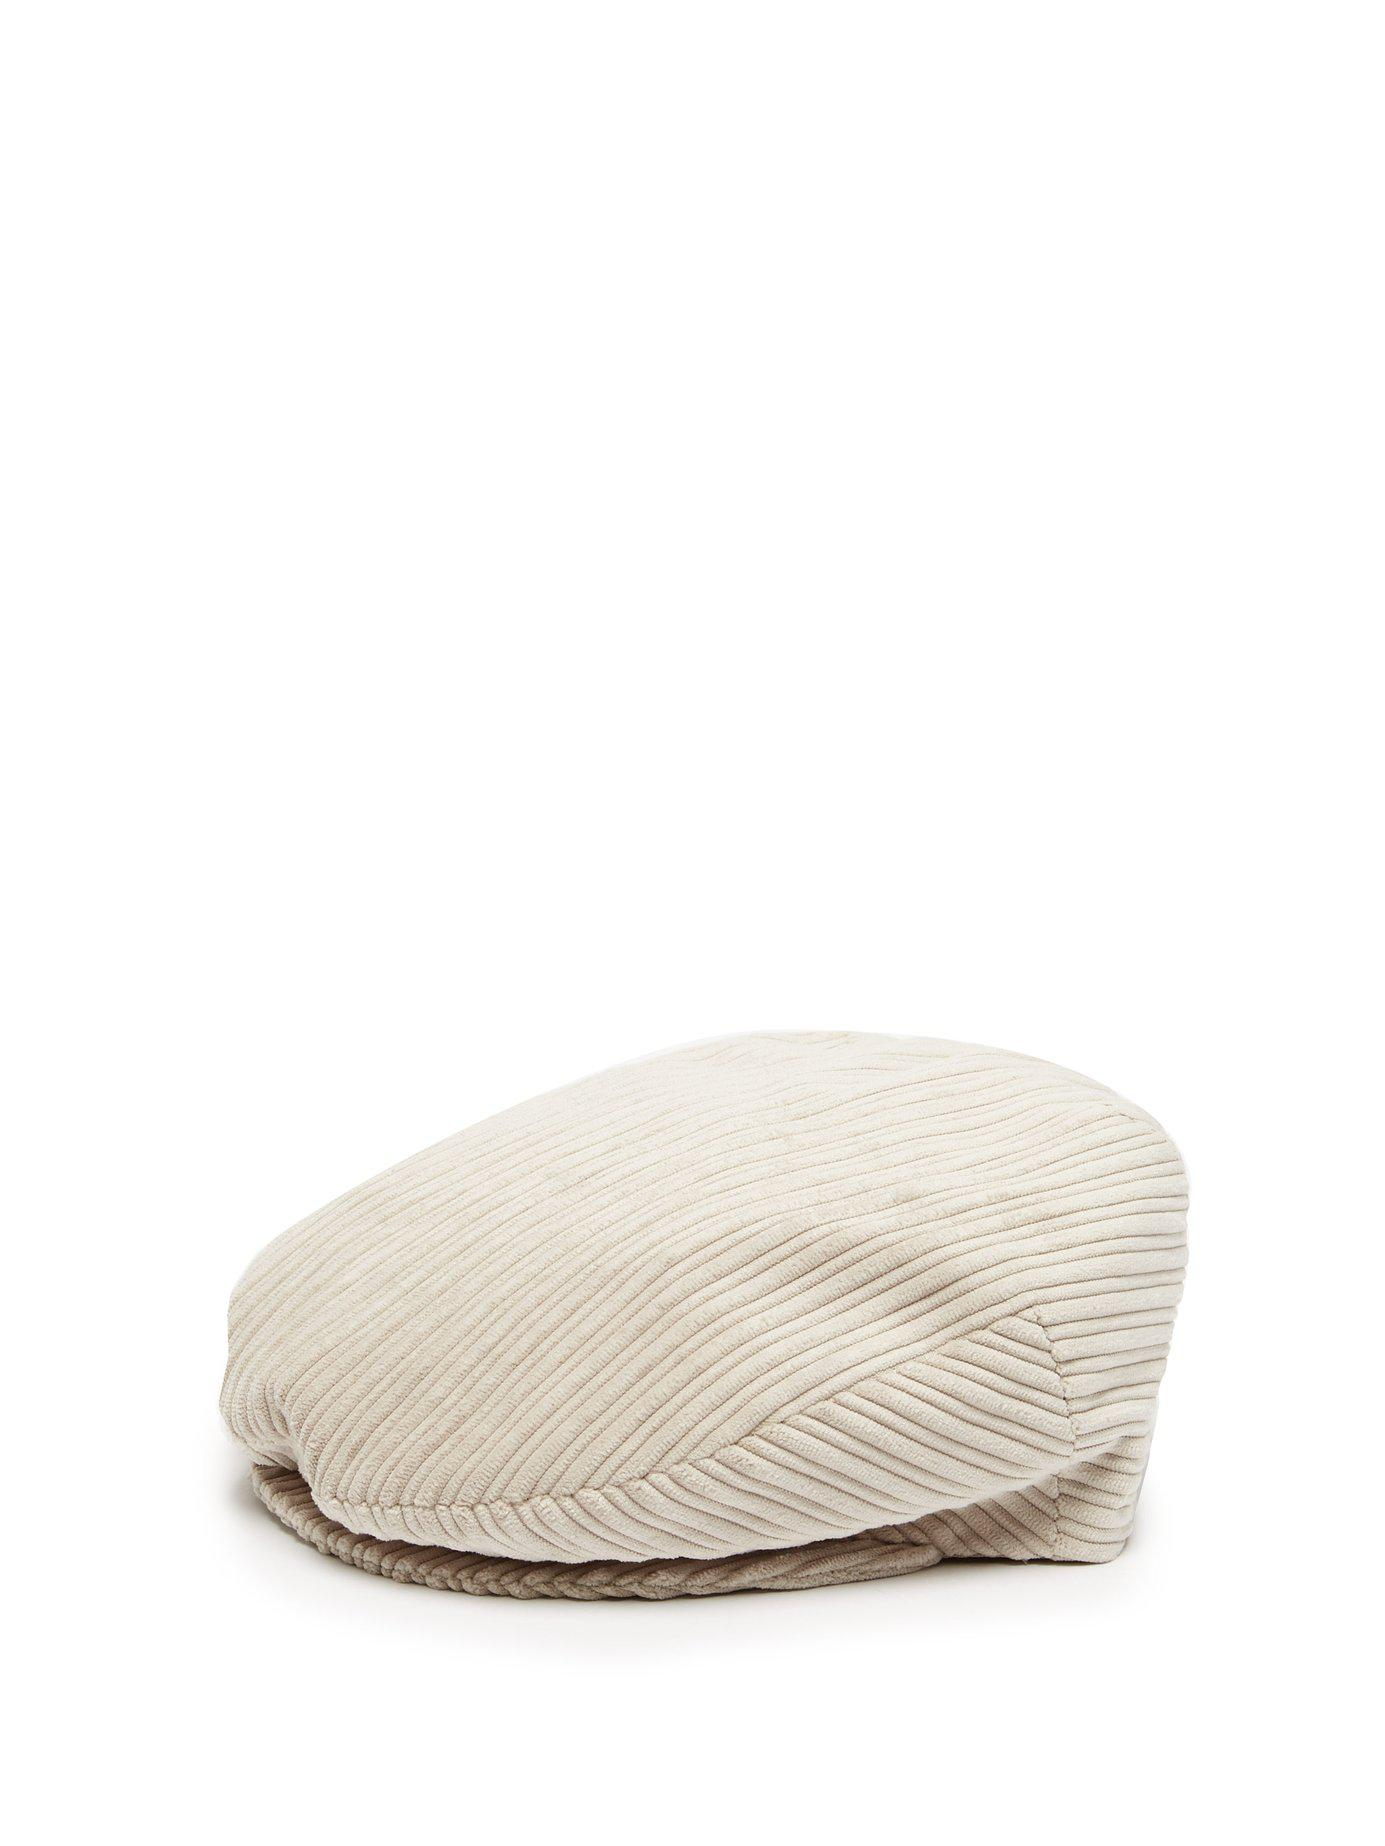 Isabel Marant - Natural Gabor Cotton Corduroy Cap - Lyst. View fullscreen 14b92eea2ca5